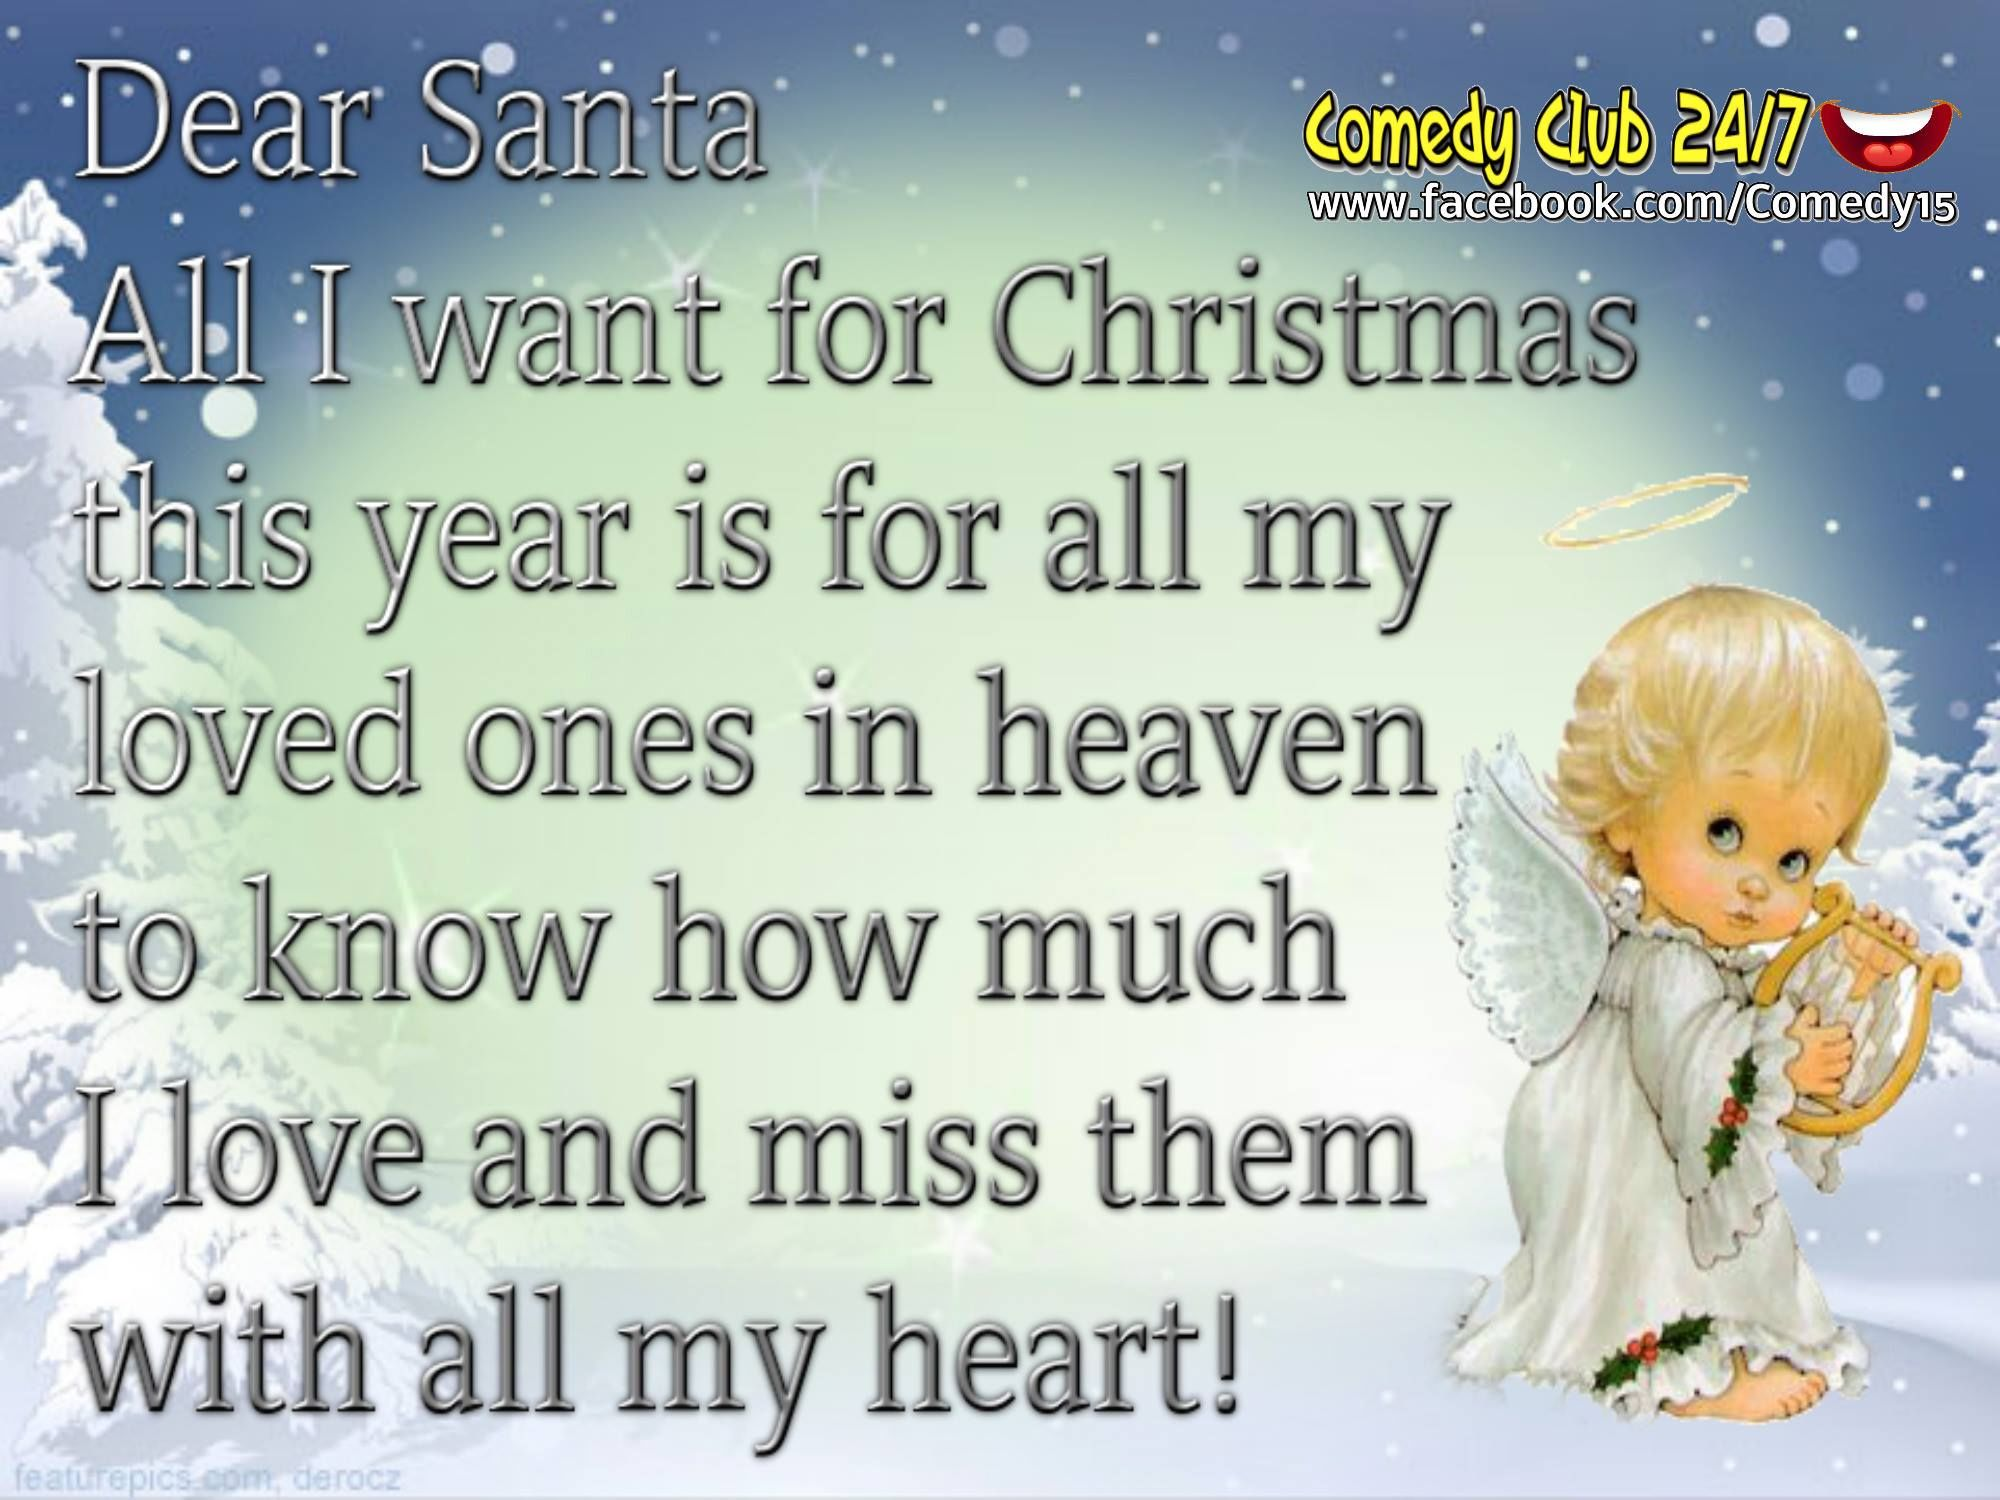 Quotes About Lost Loved Ones In Heaven Beauteous Dear Santa I Want All My Loved Ones In Heaven To Know I Love Them